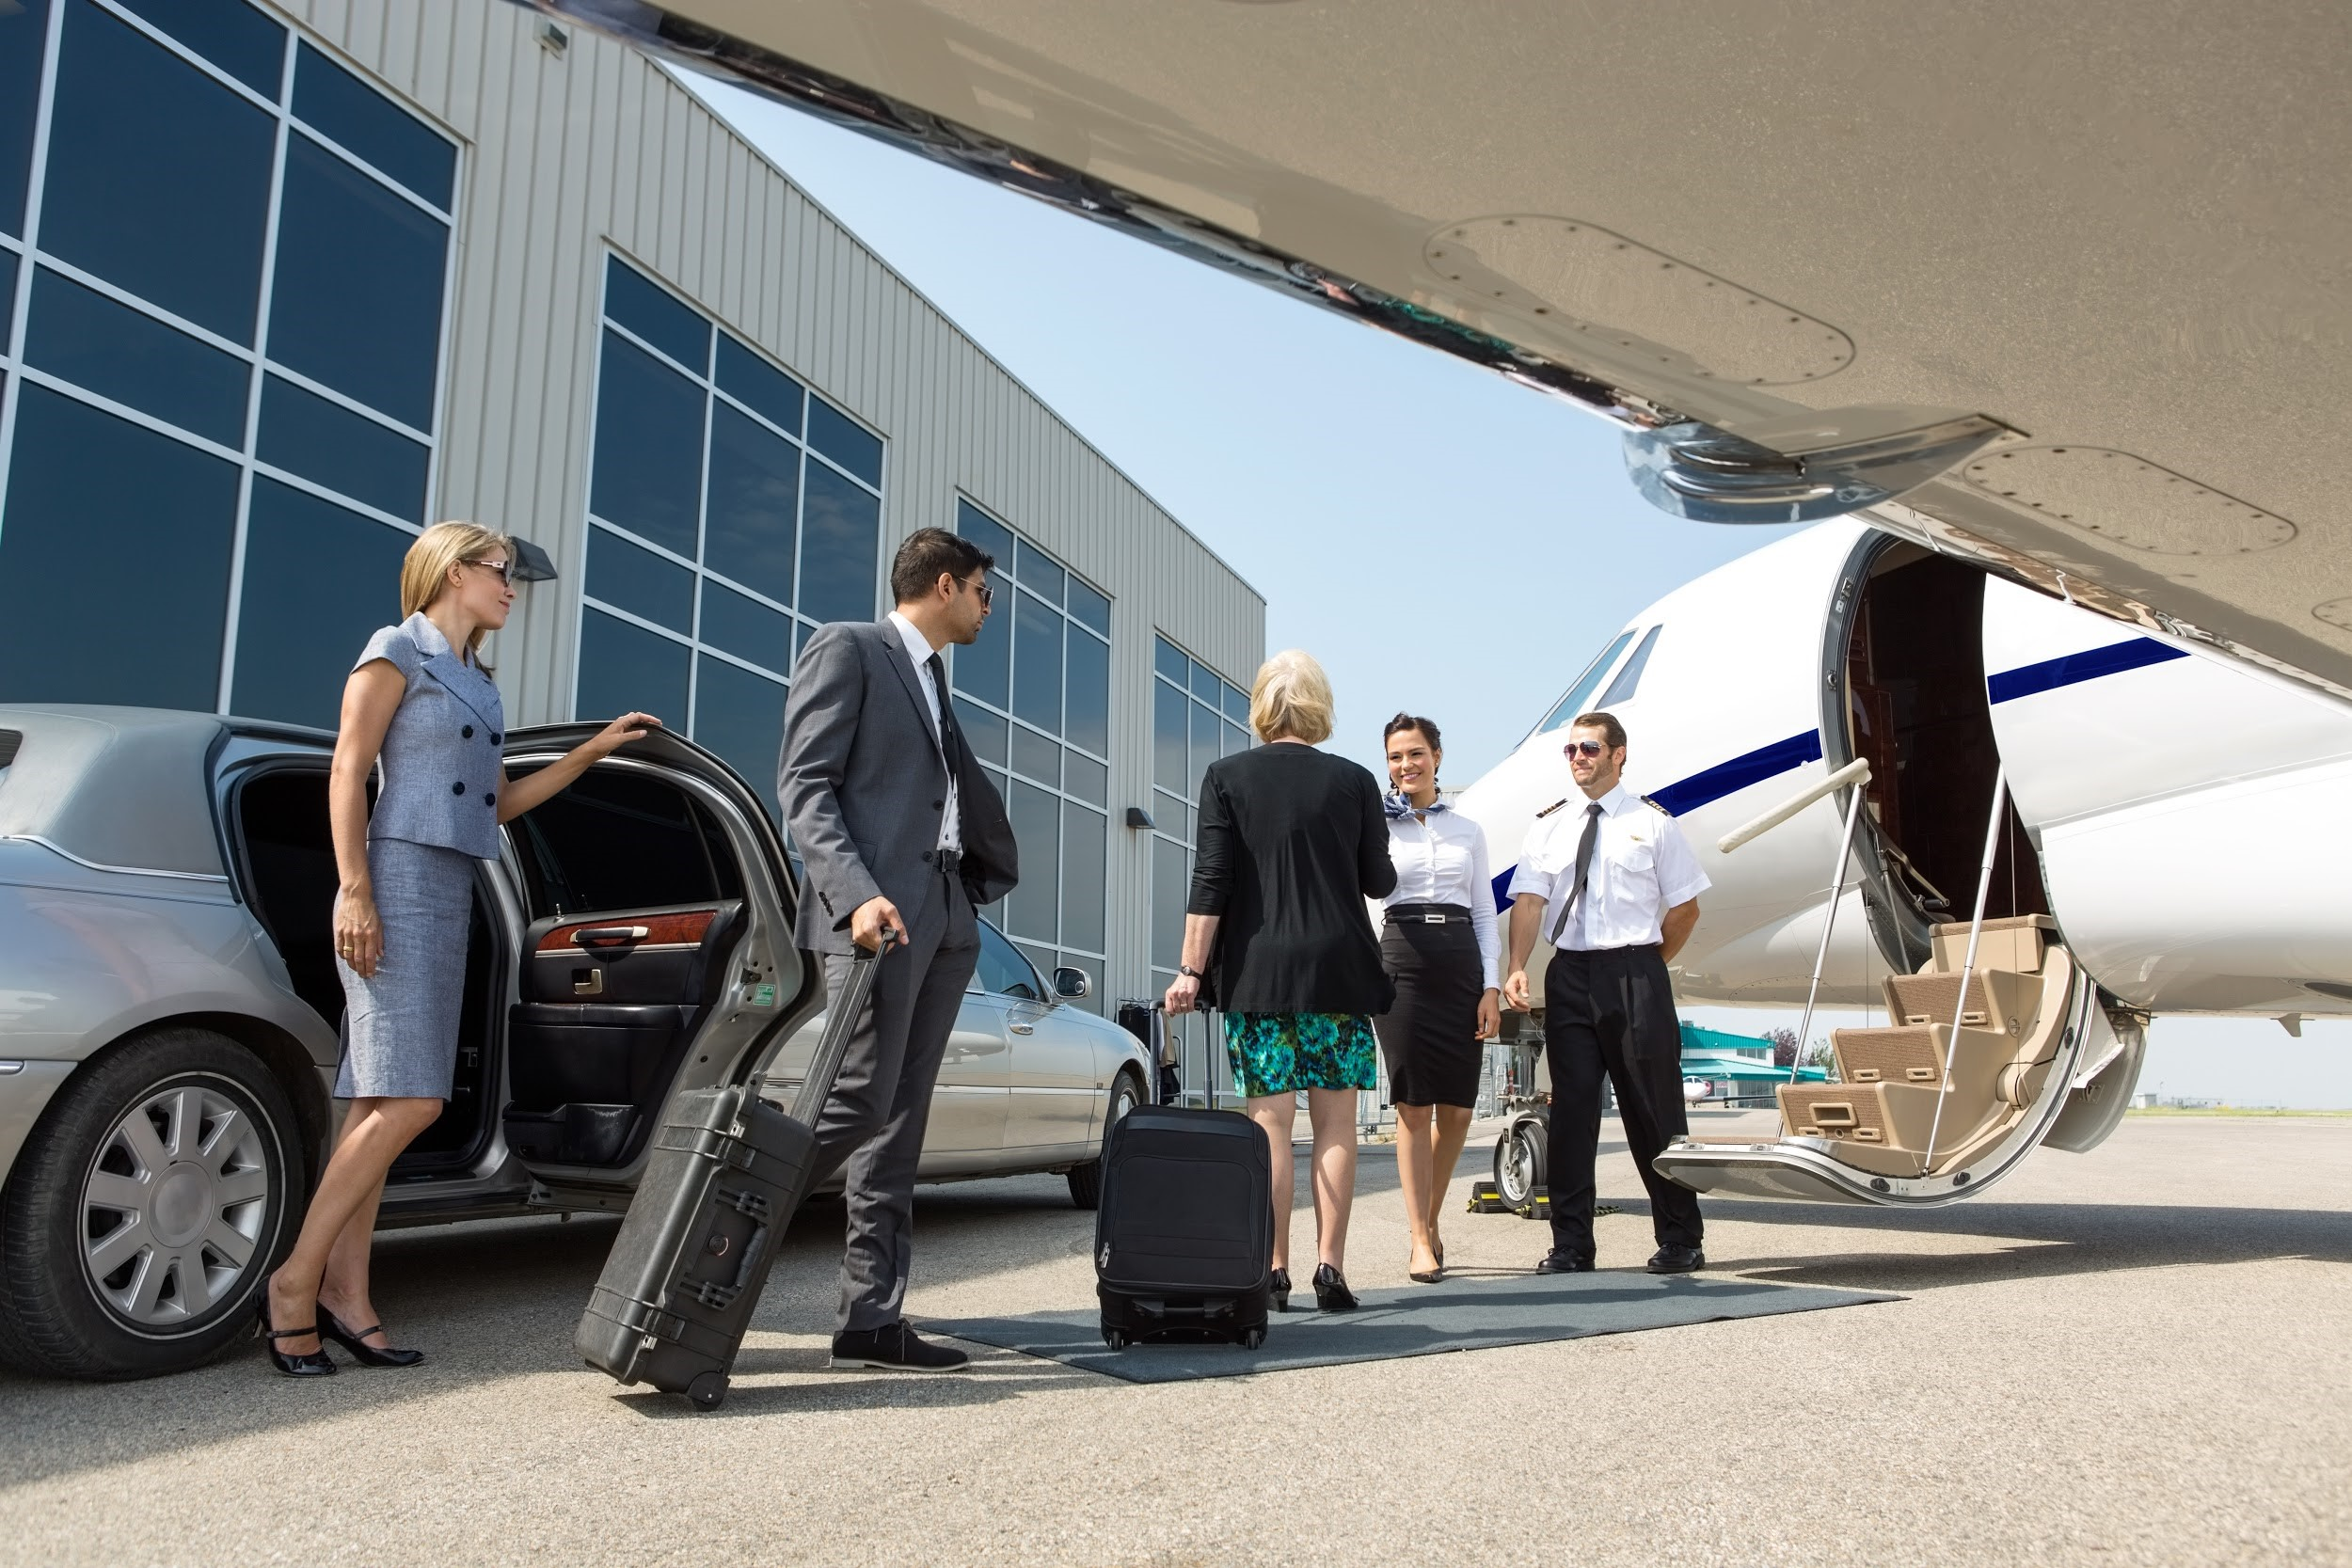 Passengers are greeted by two flight attendants while boarding a white private jet on a runway